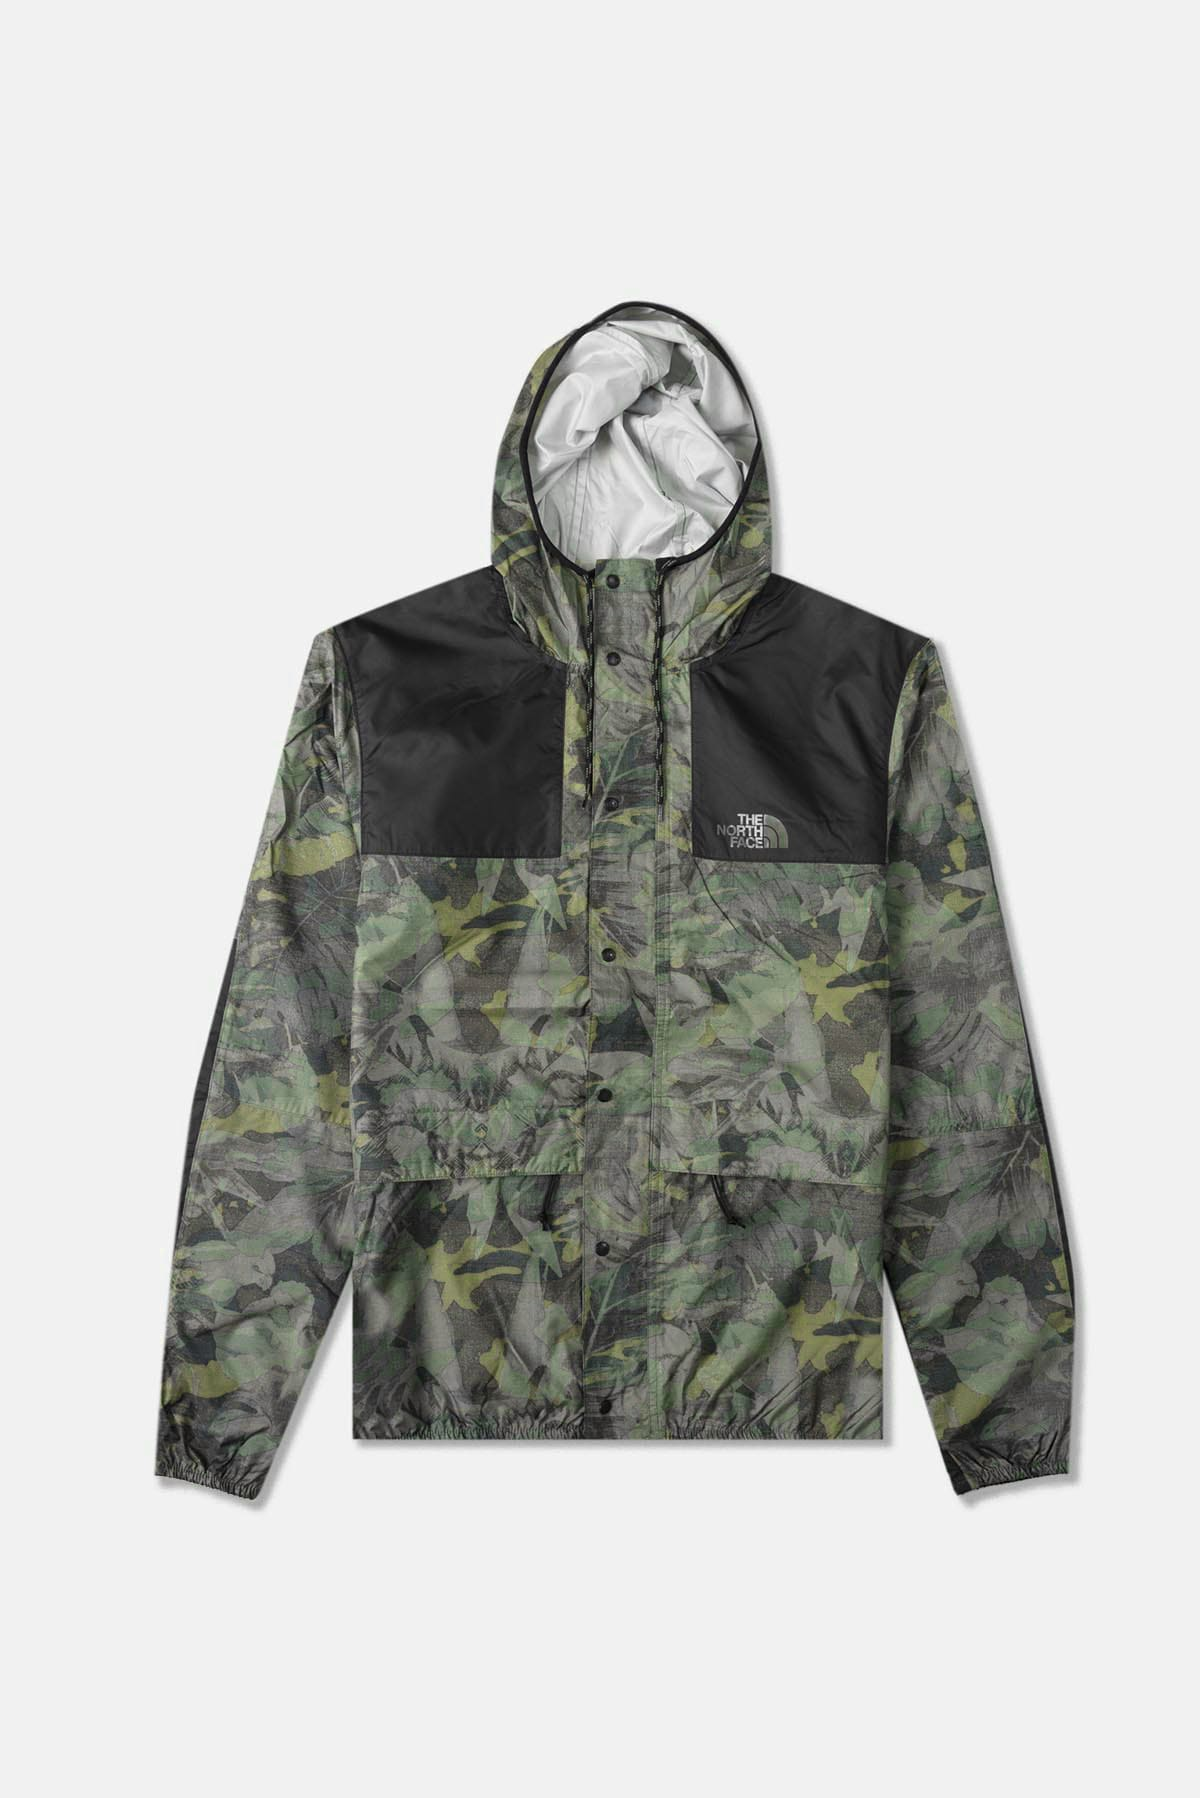 Chaqueta North Face Capsule 1985 Seasonal Mountain available